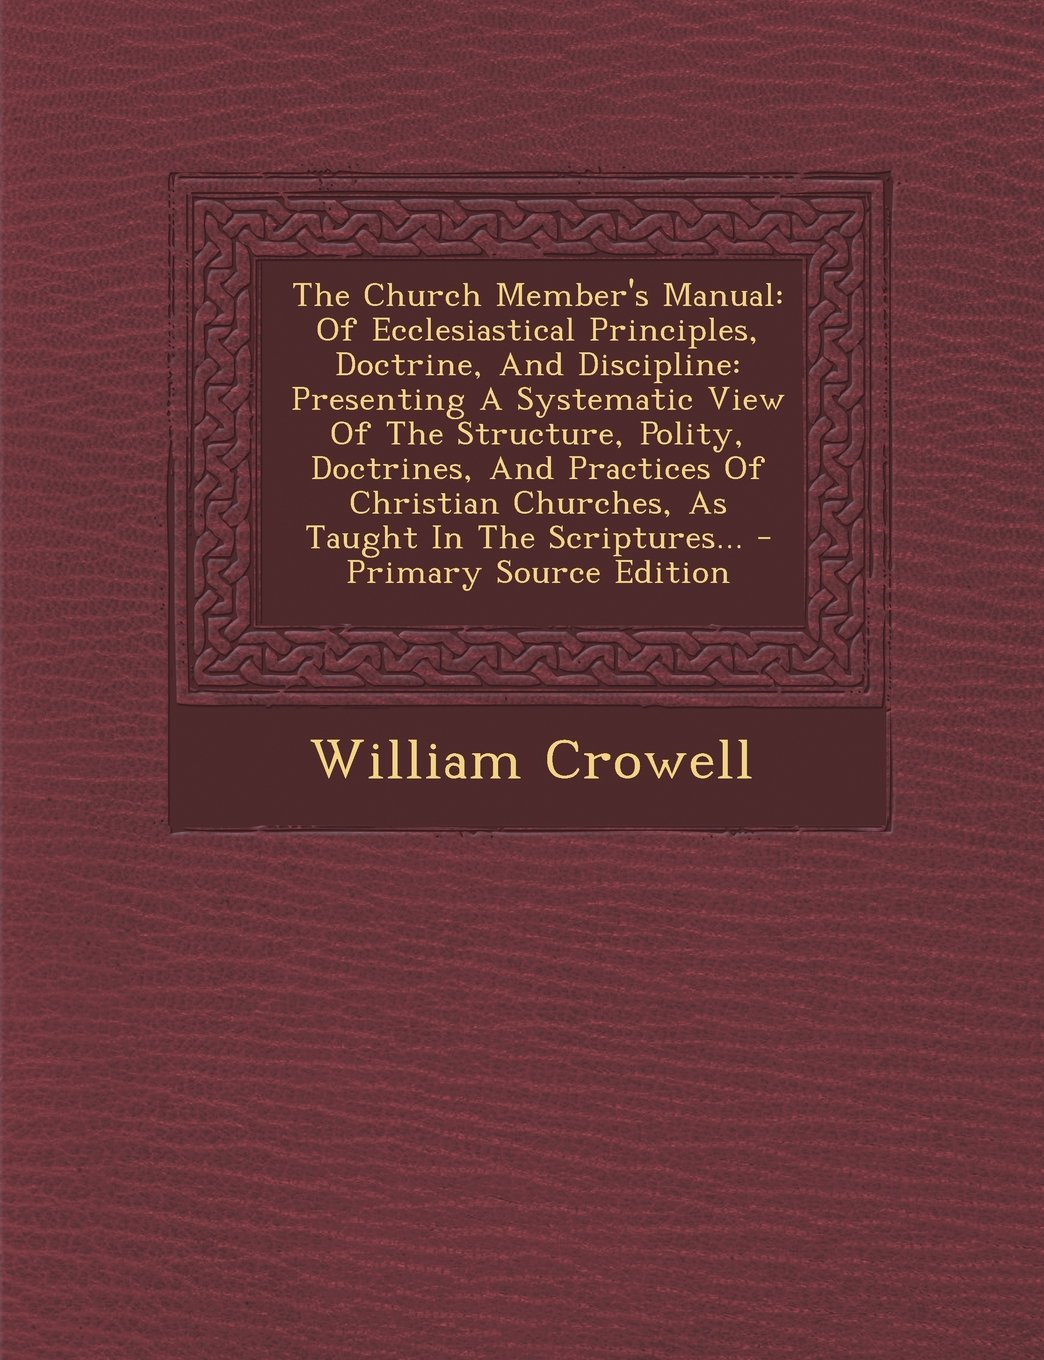 Download The Church Member's Manual: Of Ecclesiastical Principles, Doctrine, And Discipline: Presenting A Systematic View Of The Structure, Polity, Doctrines, ... In The Scriptures... - Primary Source Edition pdf